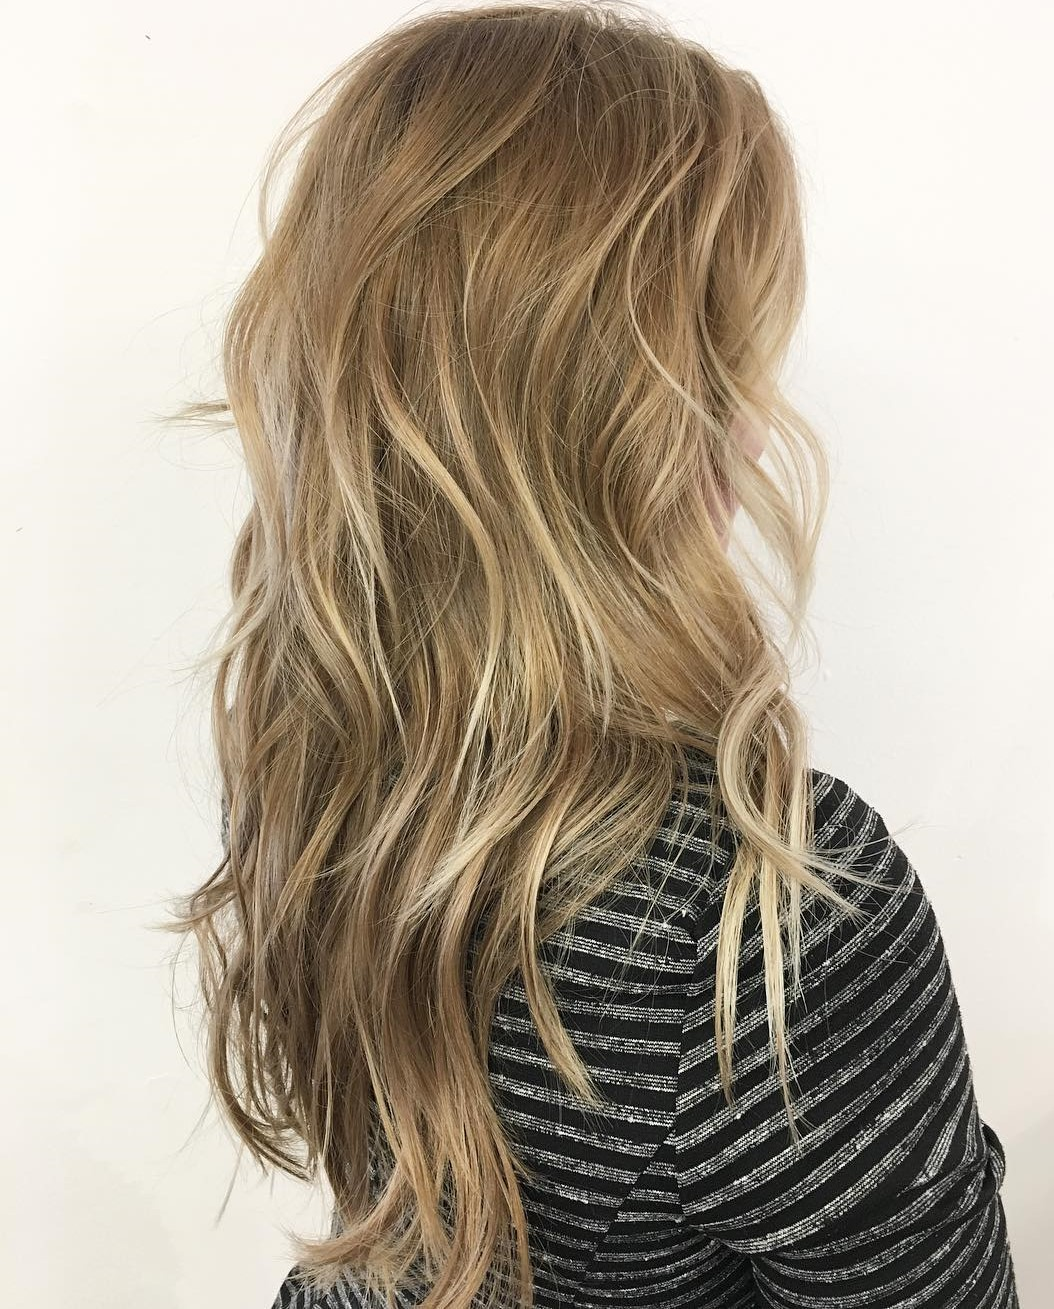 Long Layered Blonde Haircut with Highlights